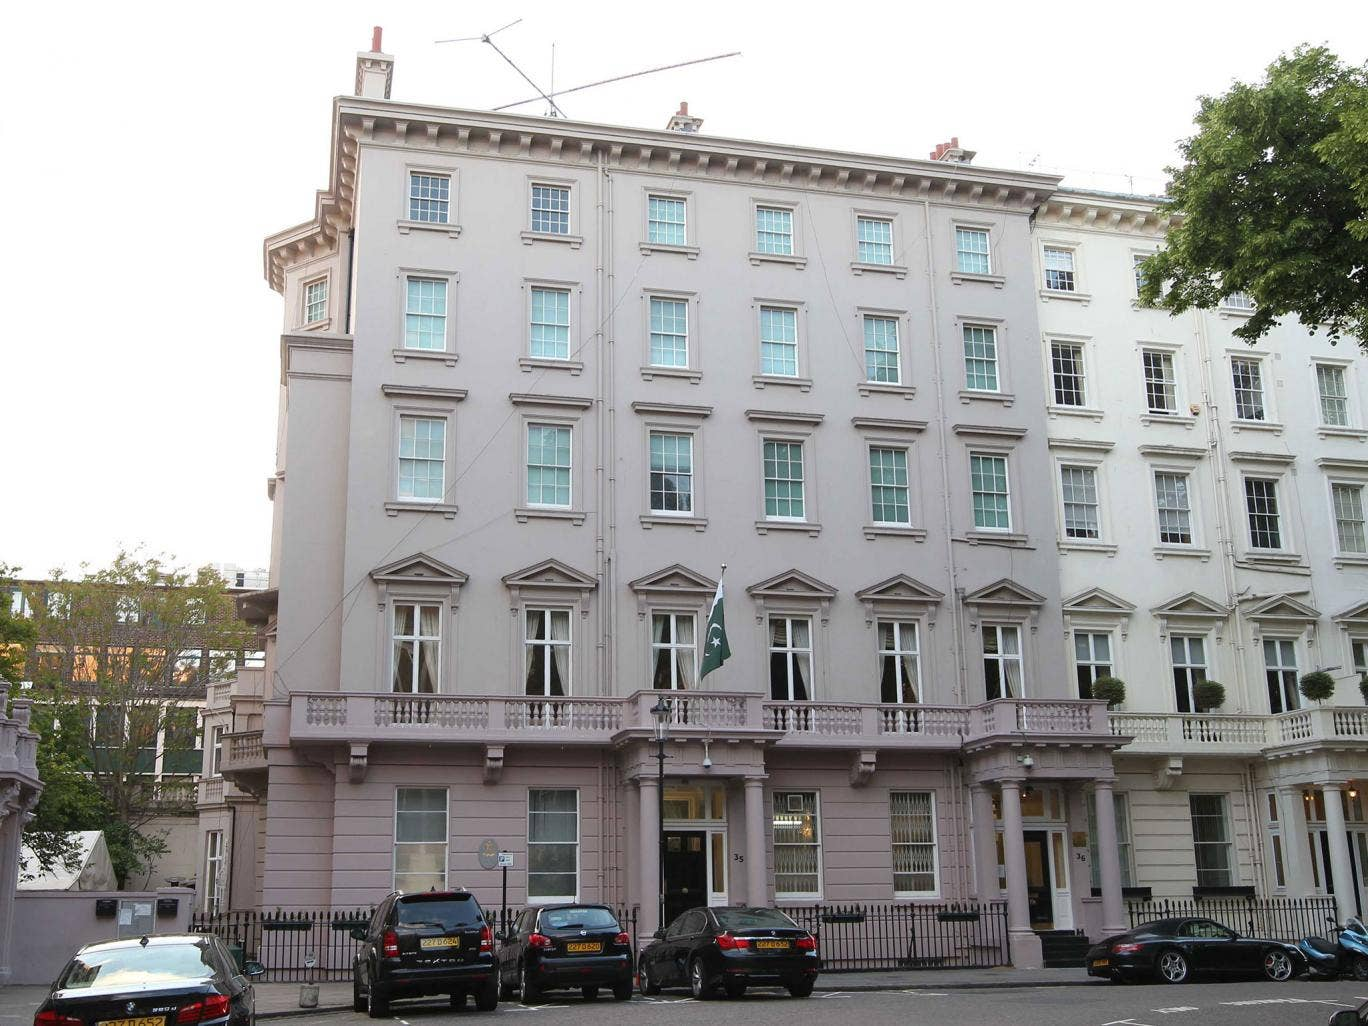 The officials are based in Pakistan's Knightsbridge embassy